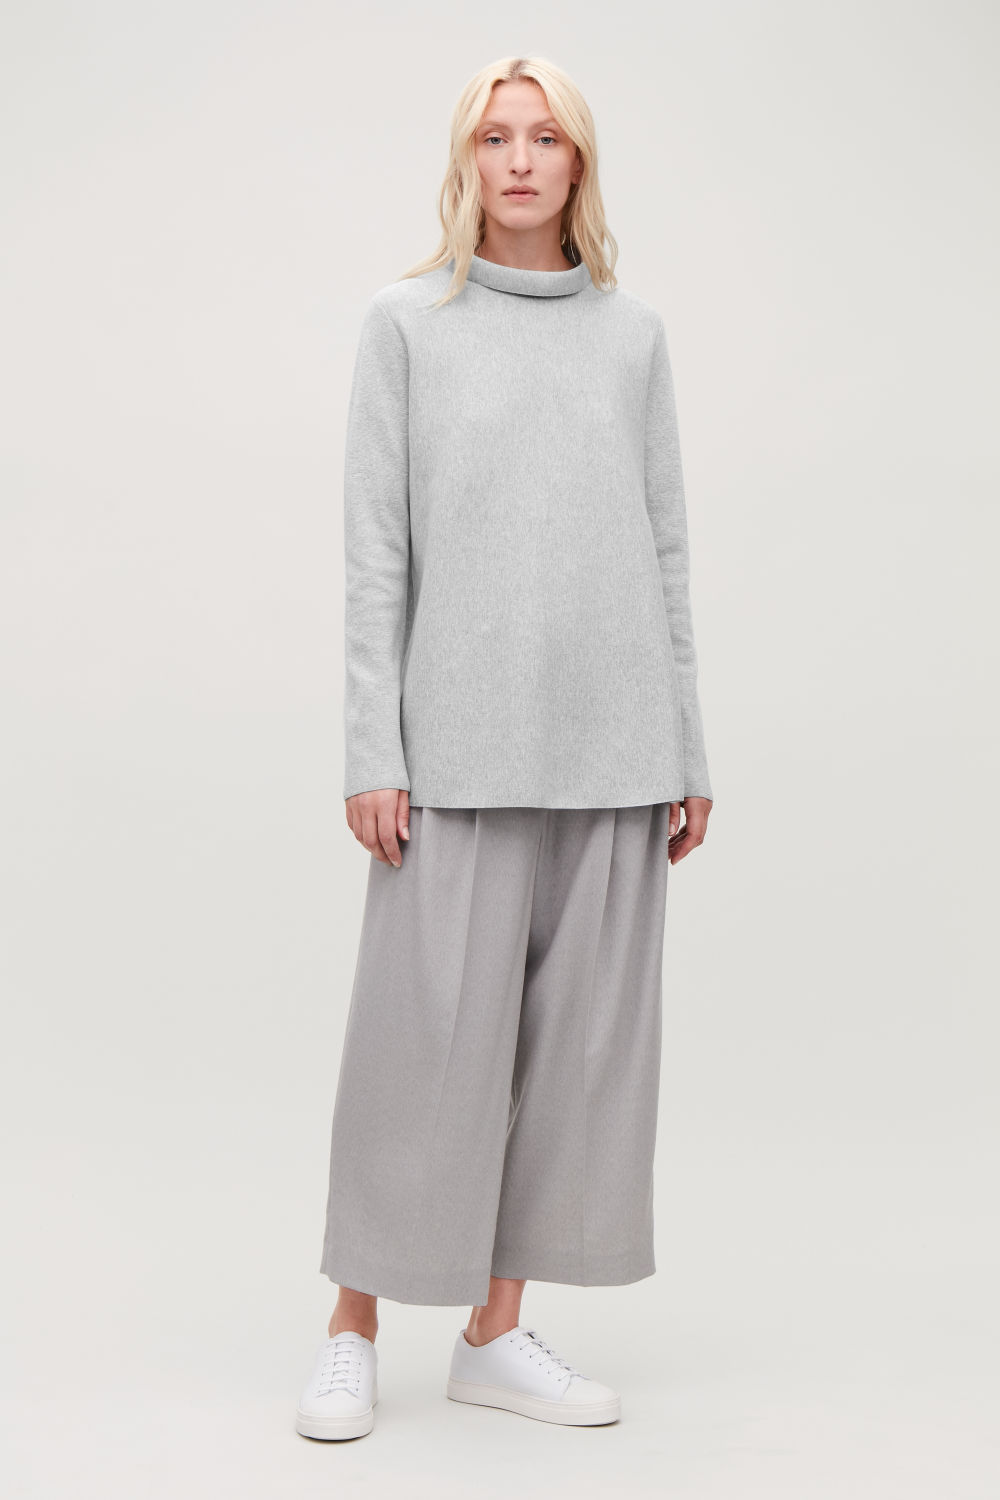 A-LINE TOP WITH FUNNEL NECK